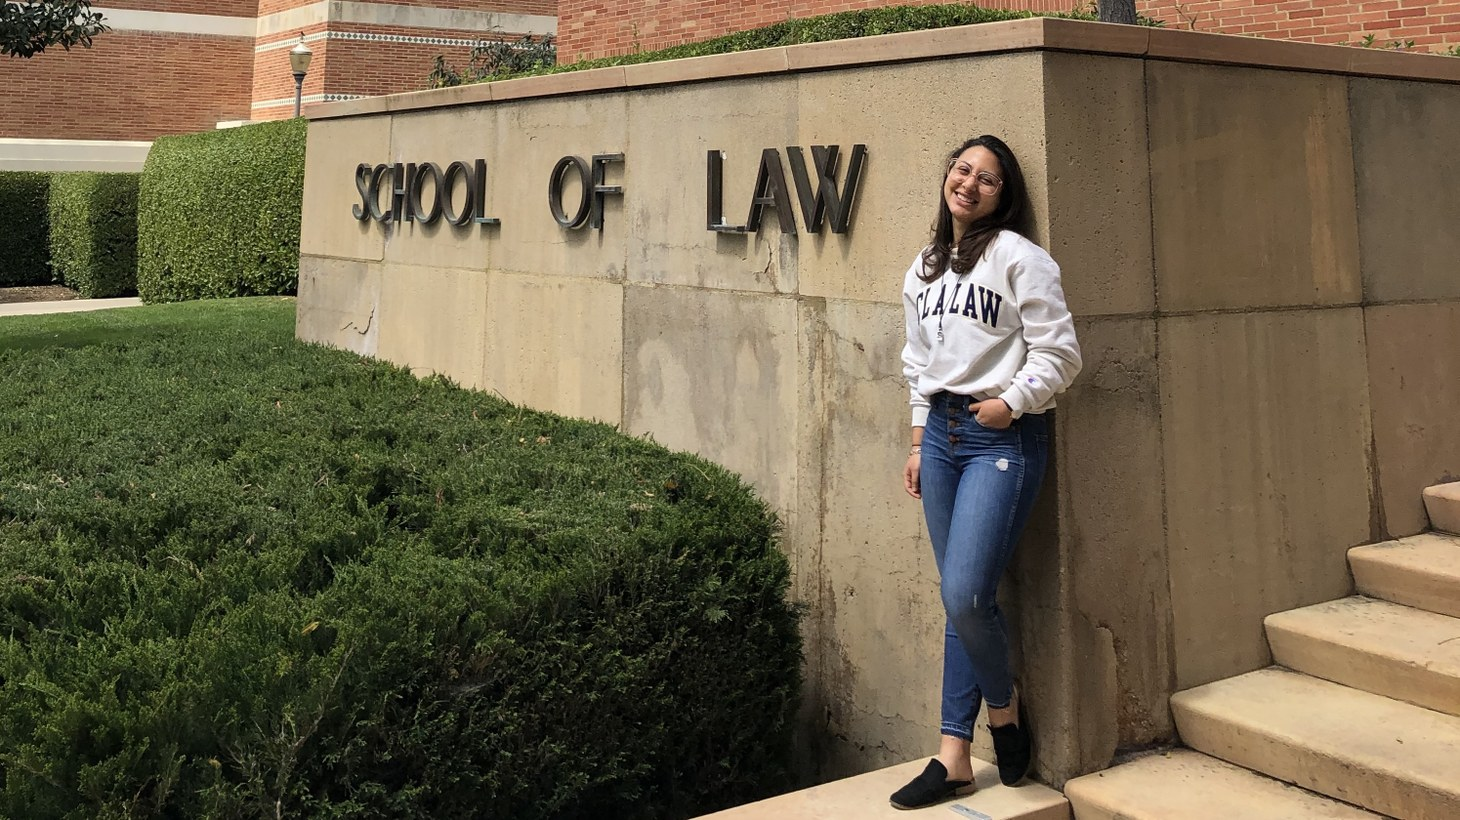 Sonni Waknin graduated from UCLA Law on May 15. She live-streamed her graduation ceremony at home with her family, and friends sent her cupcakes and pies.